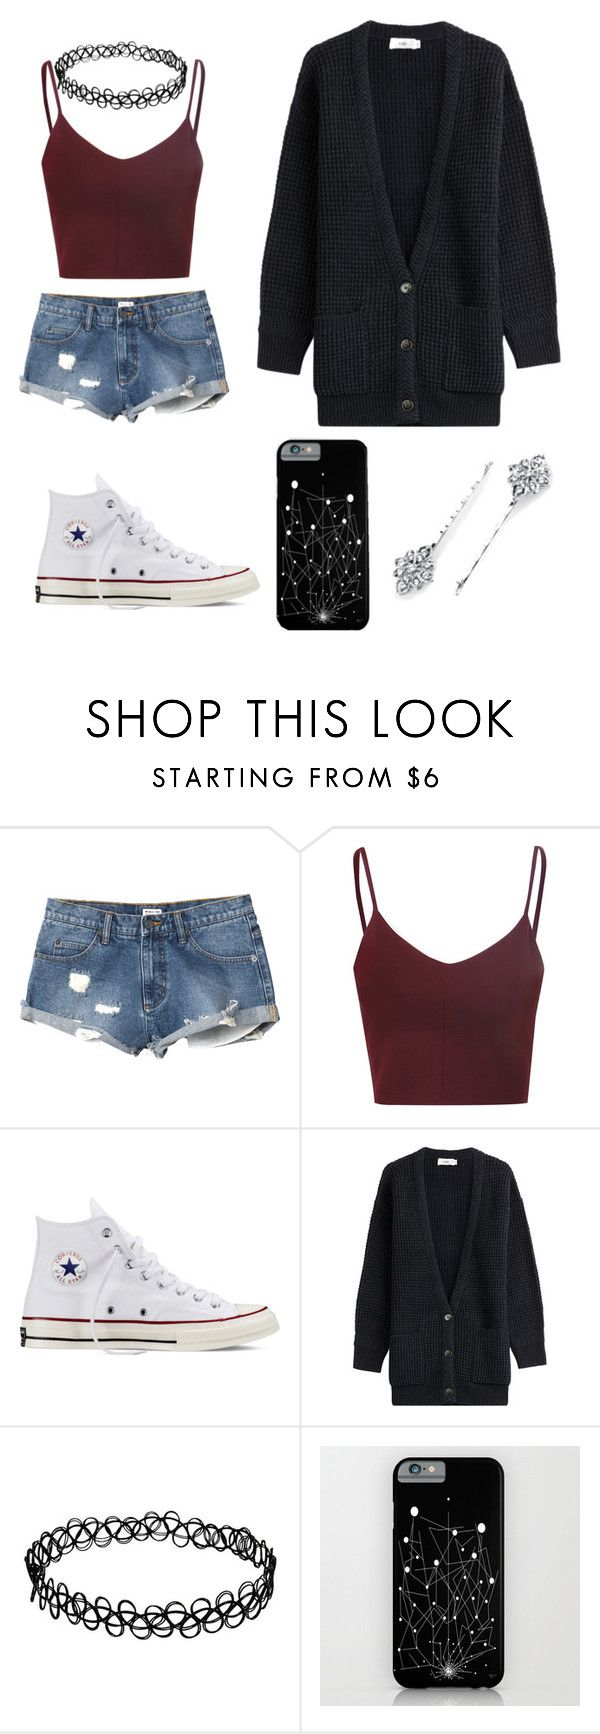 """living in a different dimension"" by syperstartasha ❤ liked on Polyvore featuring RVCA, Glamorous, Converse, Closed, 1928, women's clothing, women, female, woman and misses"